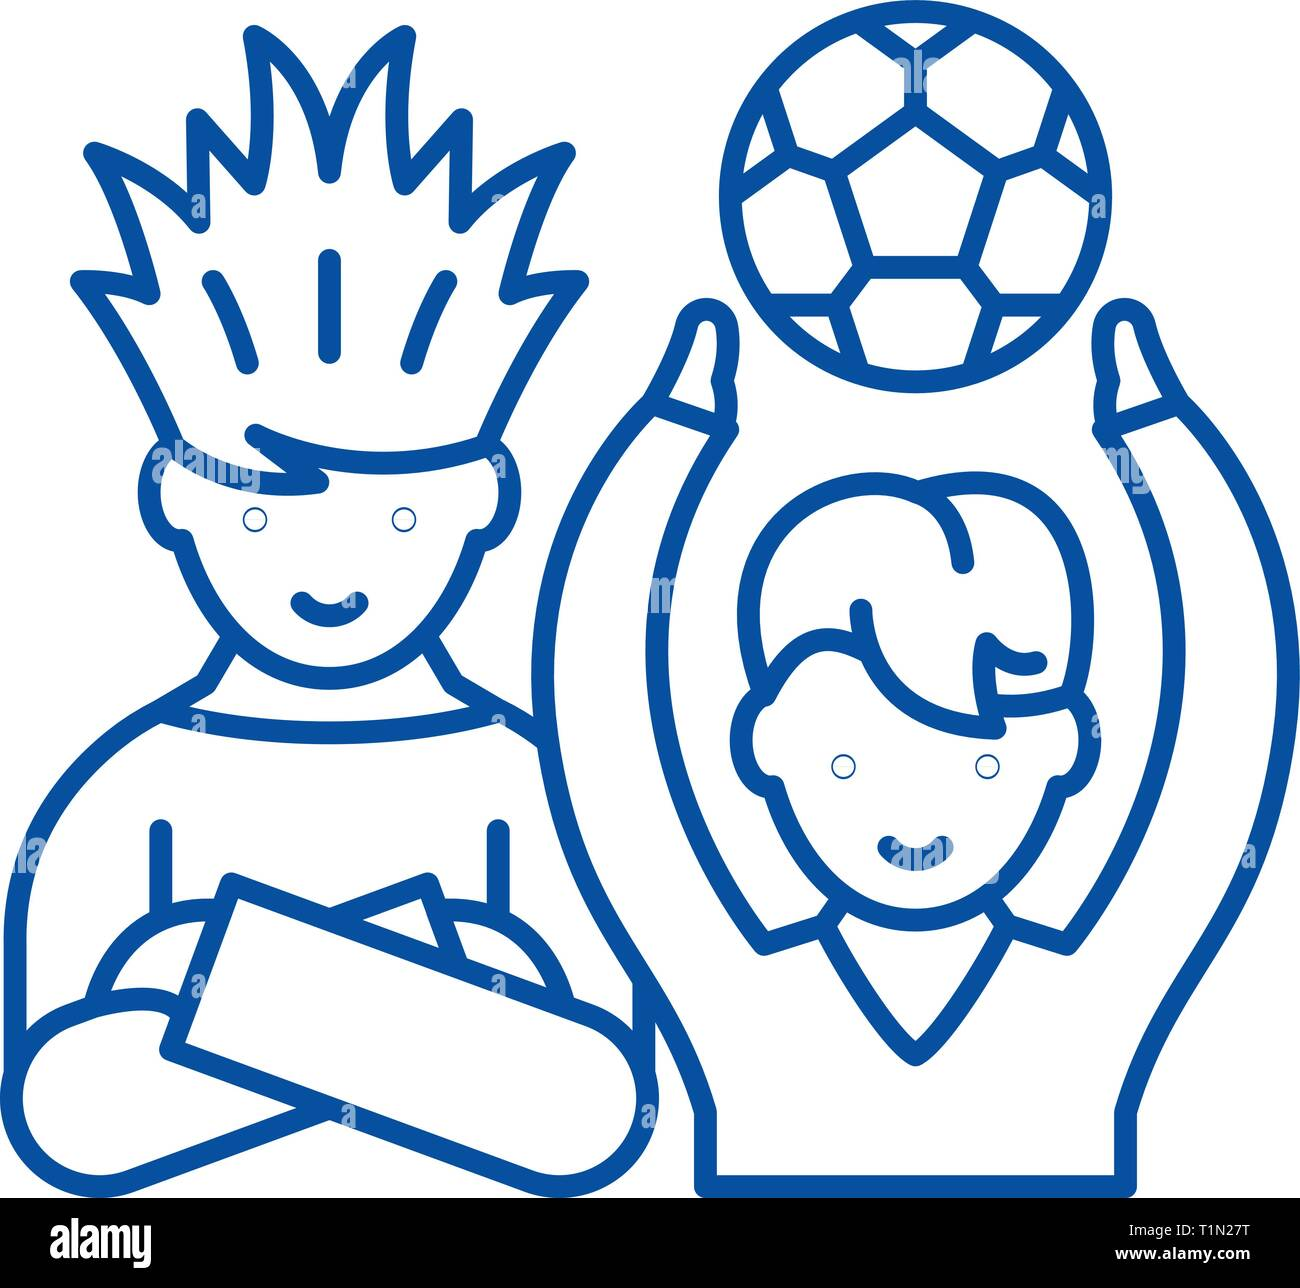 Football fans line icon concept. Football fans flat  vector symbol, sign, outline illustration. - Stock Vector